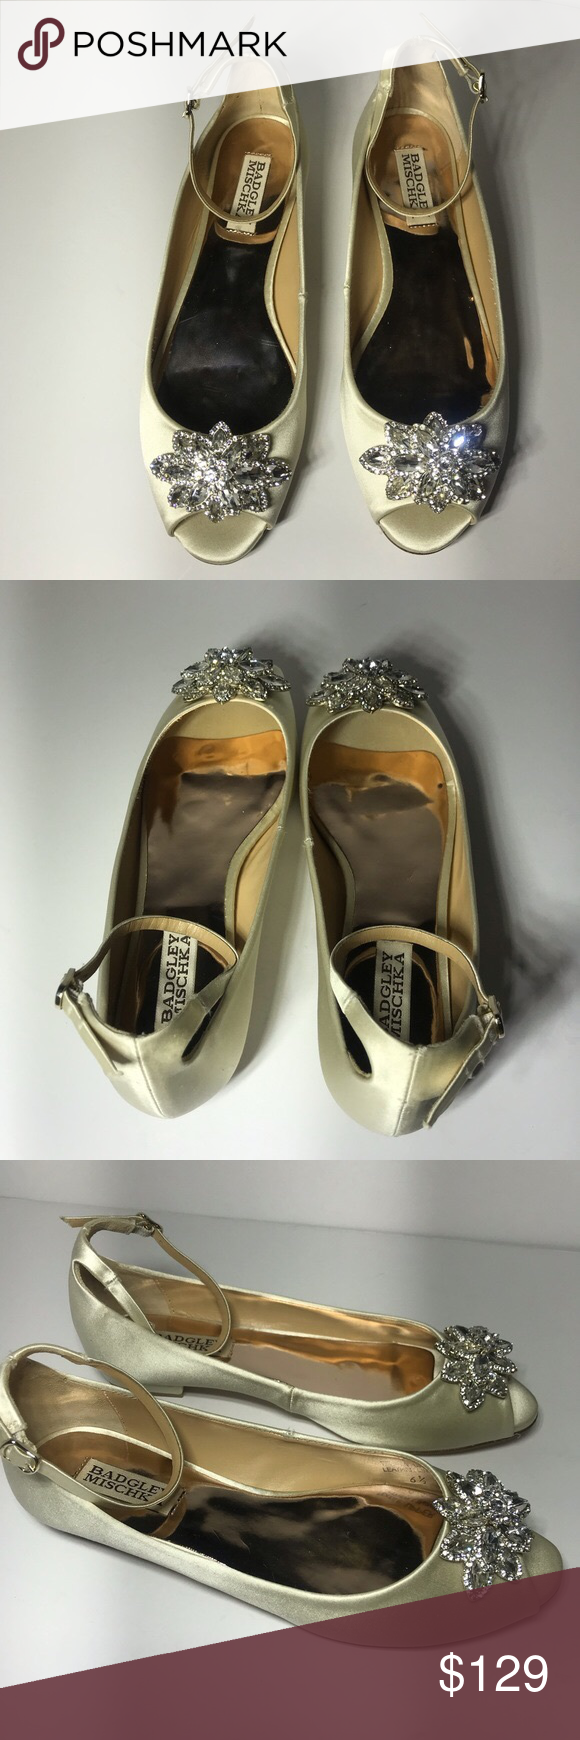 Badgley Mischka Kaidence Metallic Ballet Flats Badgley Mischka metallic suede ba